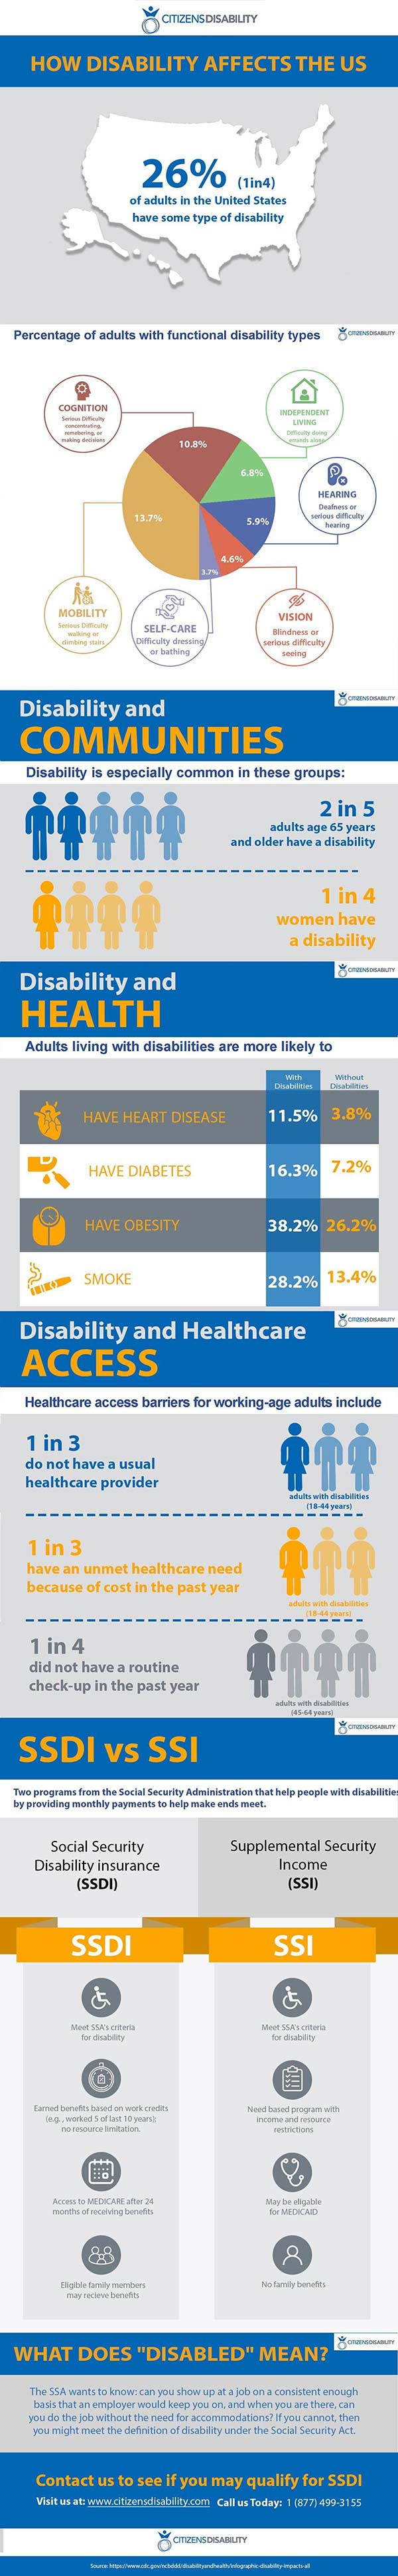 An very in-depth infographic that has stats on how disability affects Americans, including the type of disability, groups that are more prone to disability, and how to get help.